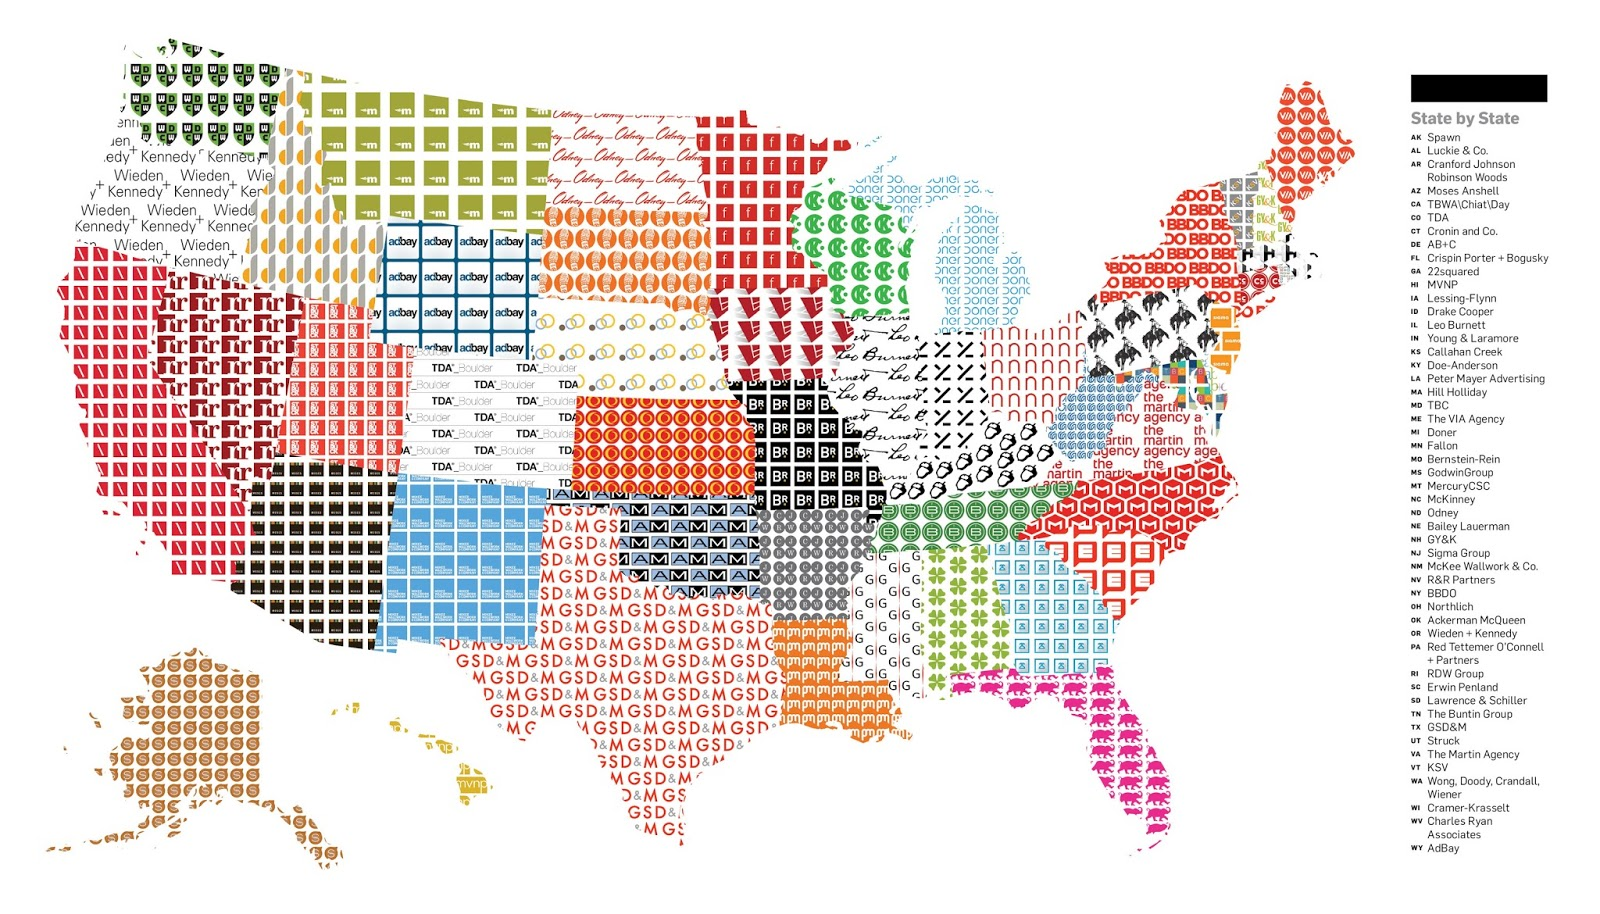 the united states of ad agencies